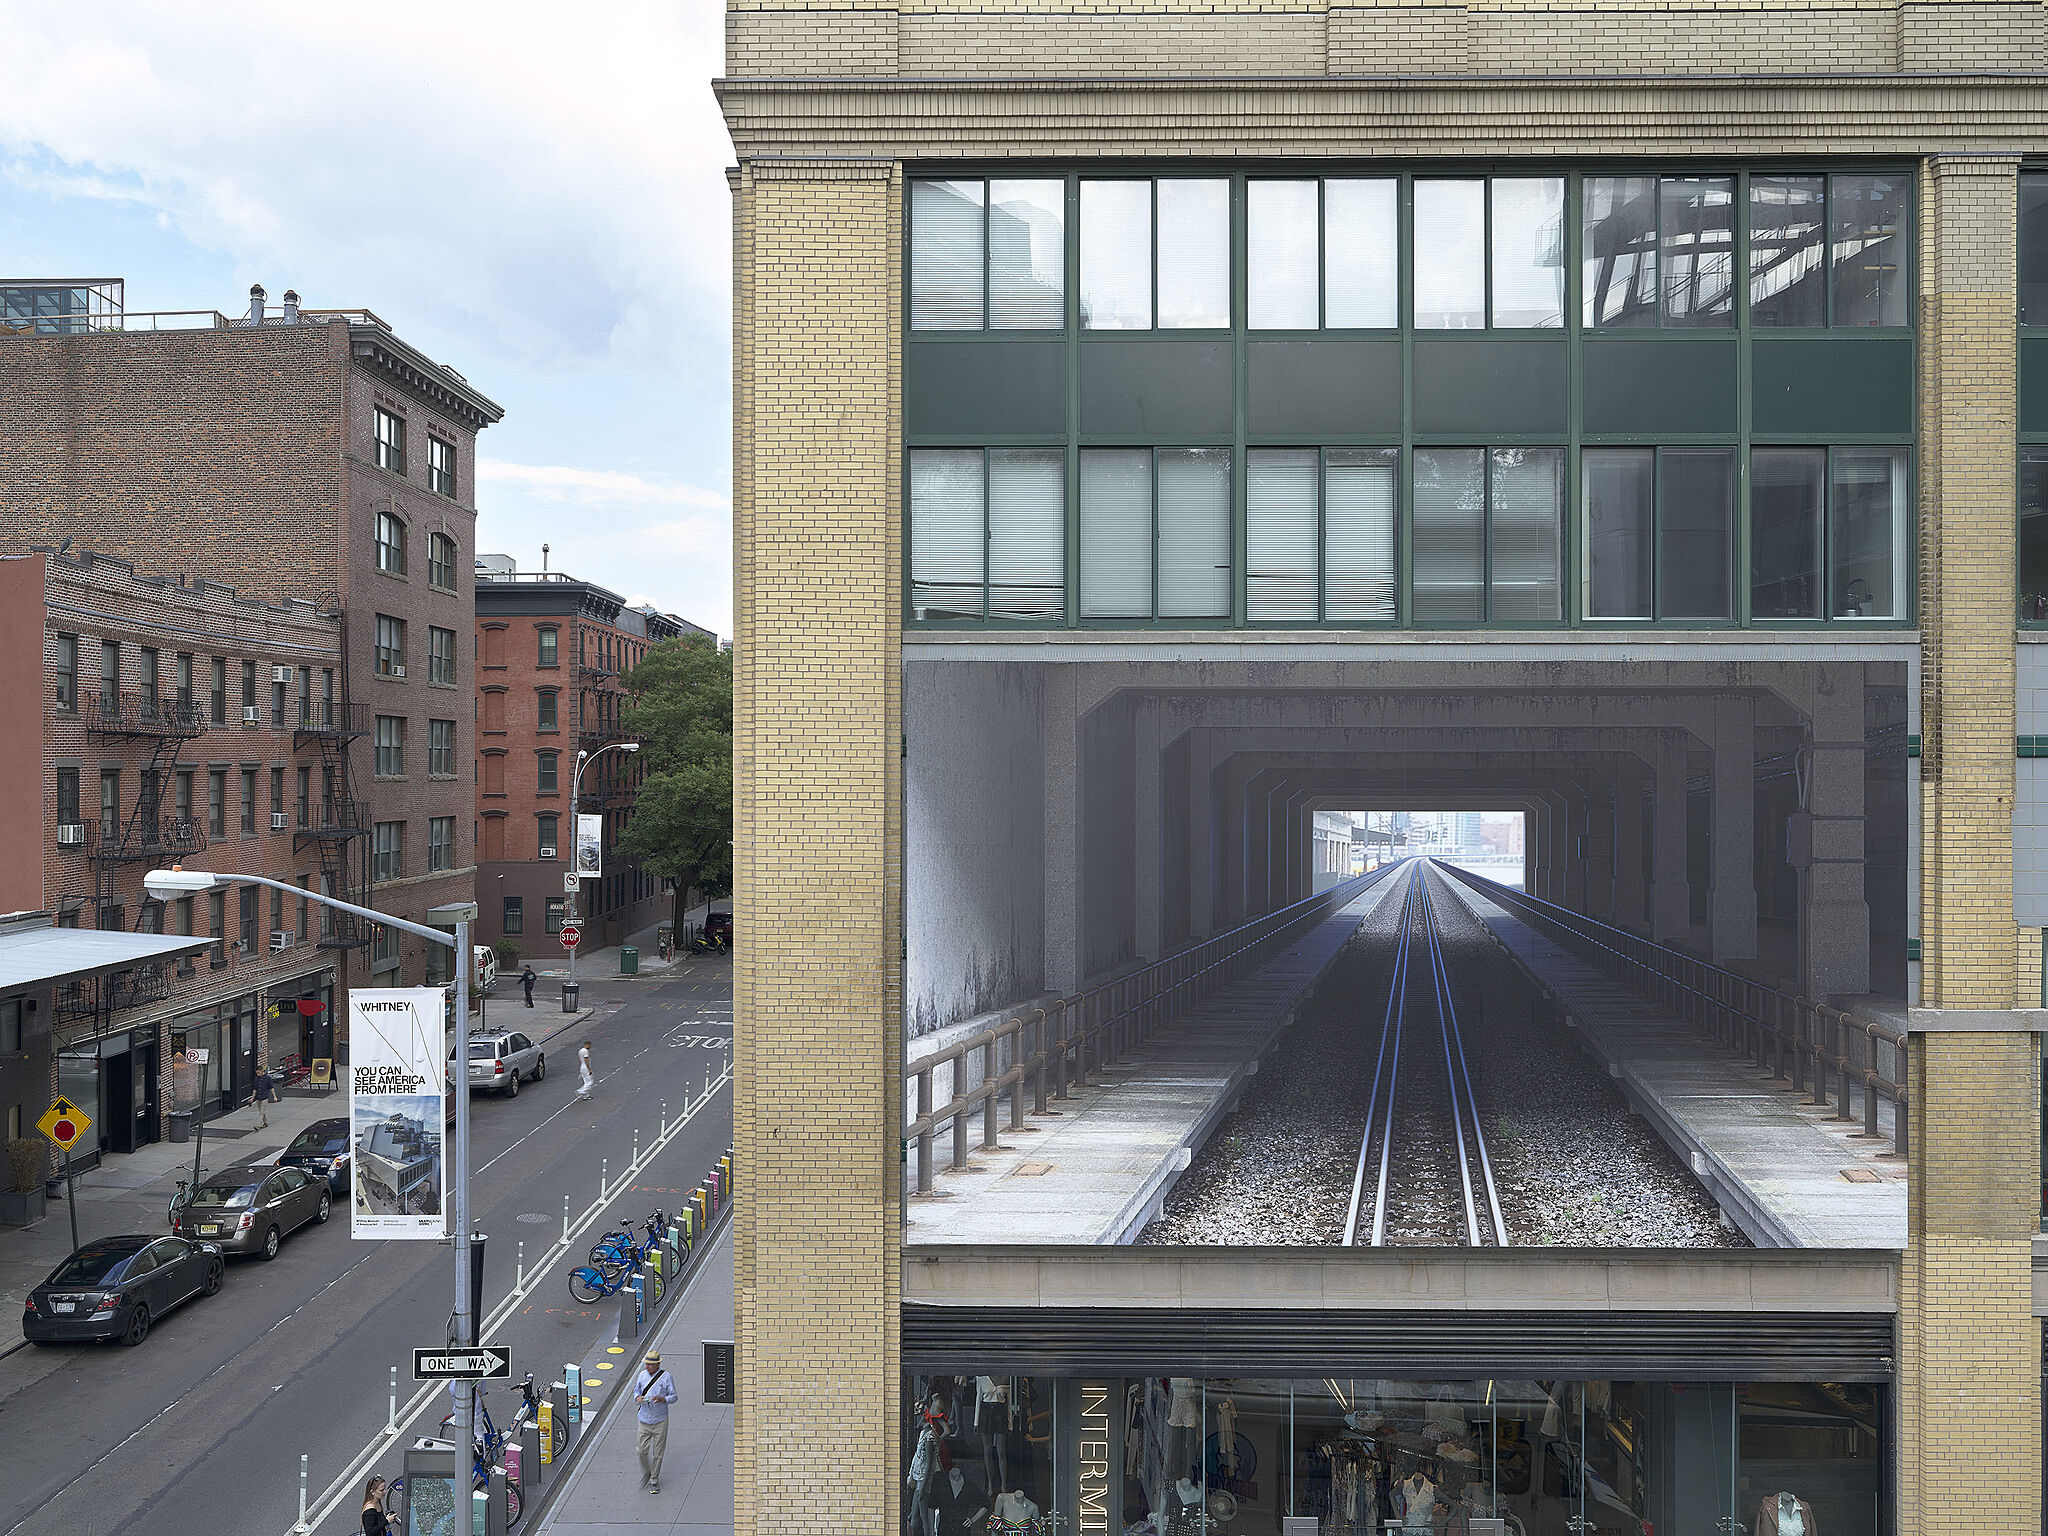 Installation view of 95 Horatio Street billboard from the High Line.